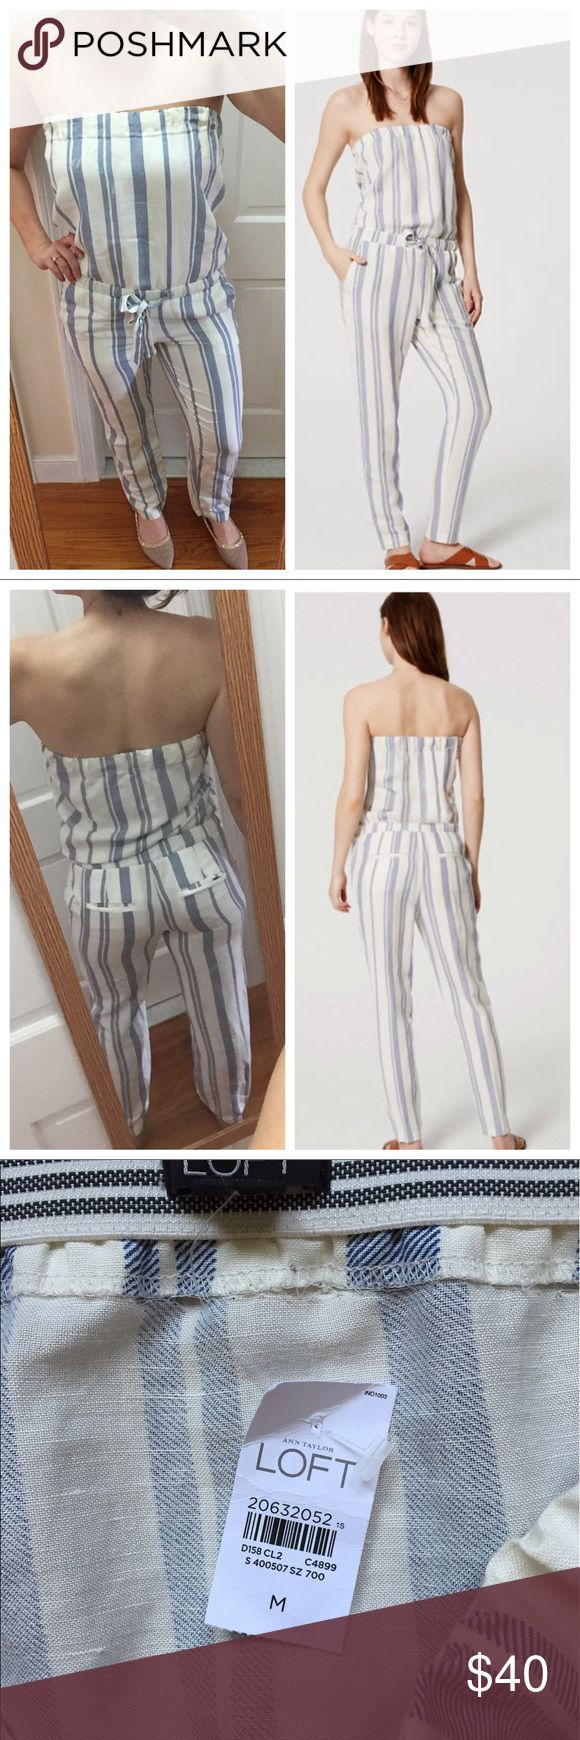 LOFT White & Blue Striped Jumpsuit NWT! Orig $69.50. A breezy nautical jumpsuit that's perfect for summer! Ties at the waist, flattering back pockets, and thick band around the chest that won't pinch or fall down. I'm 5'6 for reference. Happy to answer any questions! Price firm unless bundled! LOFT Pants Jumpsuits & Rompers